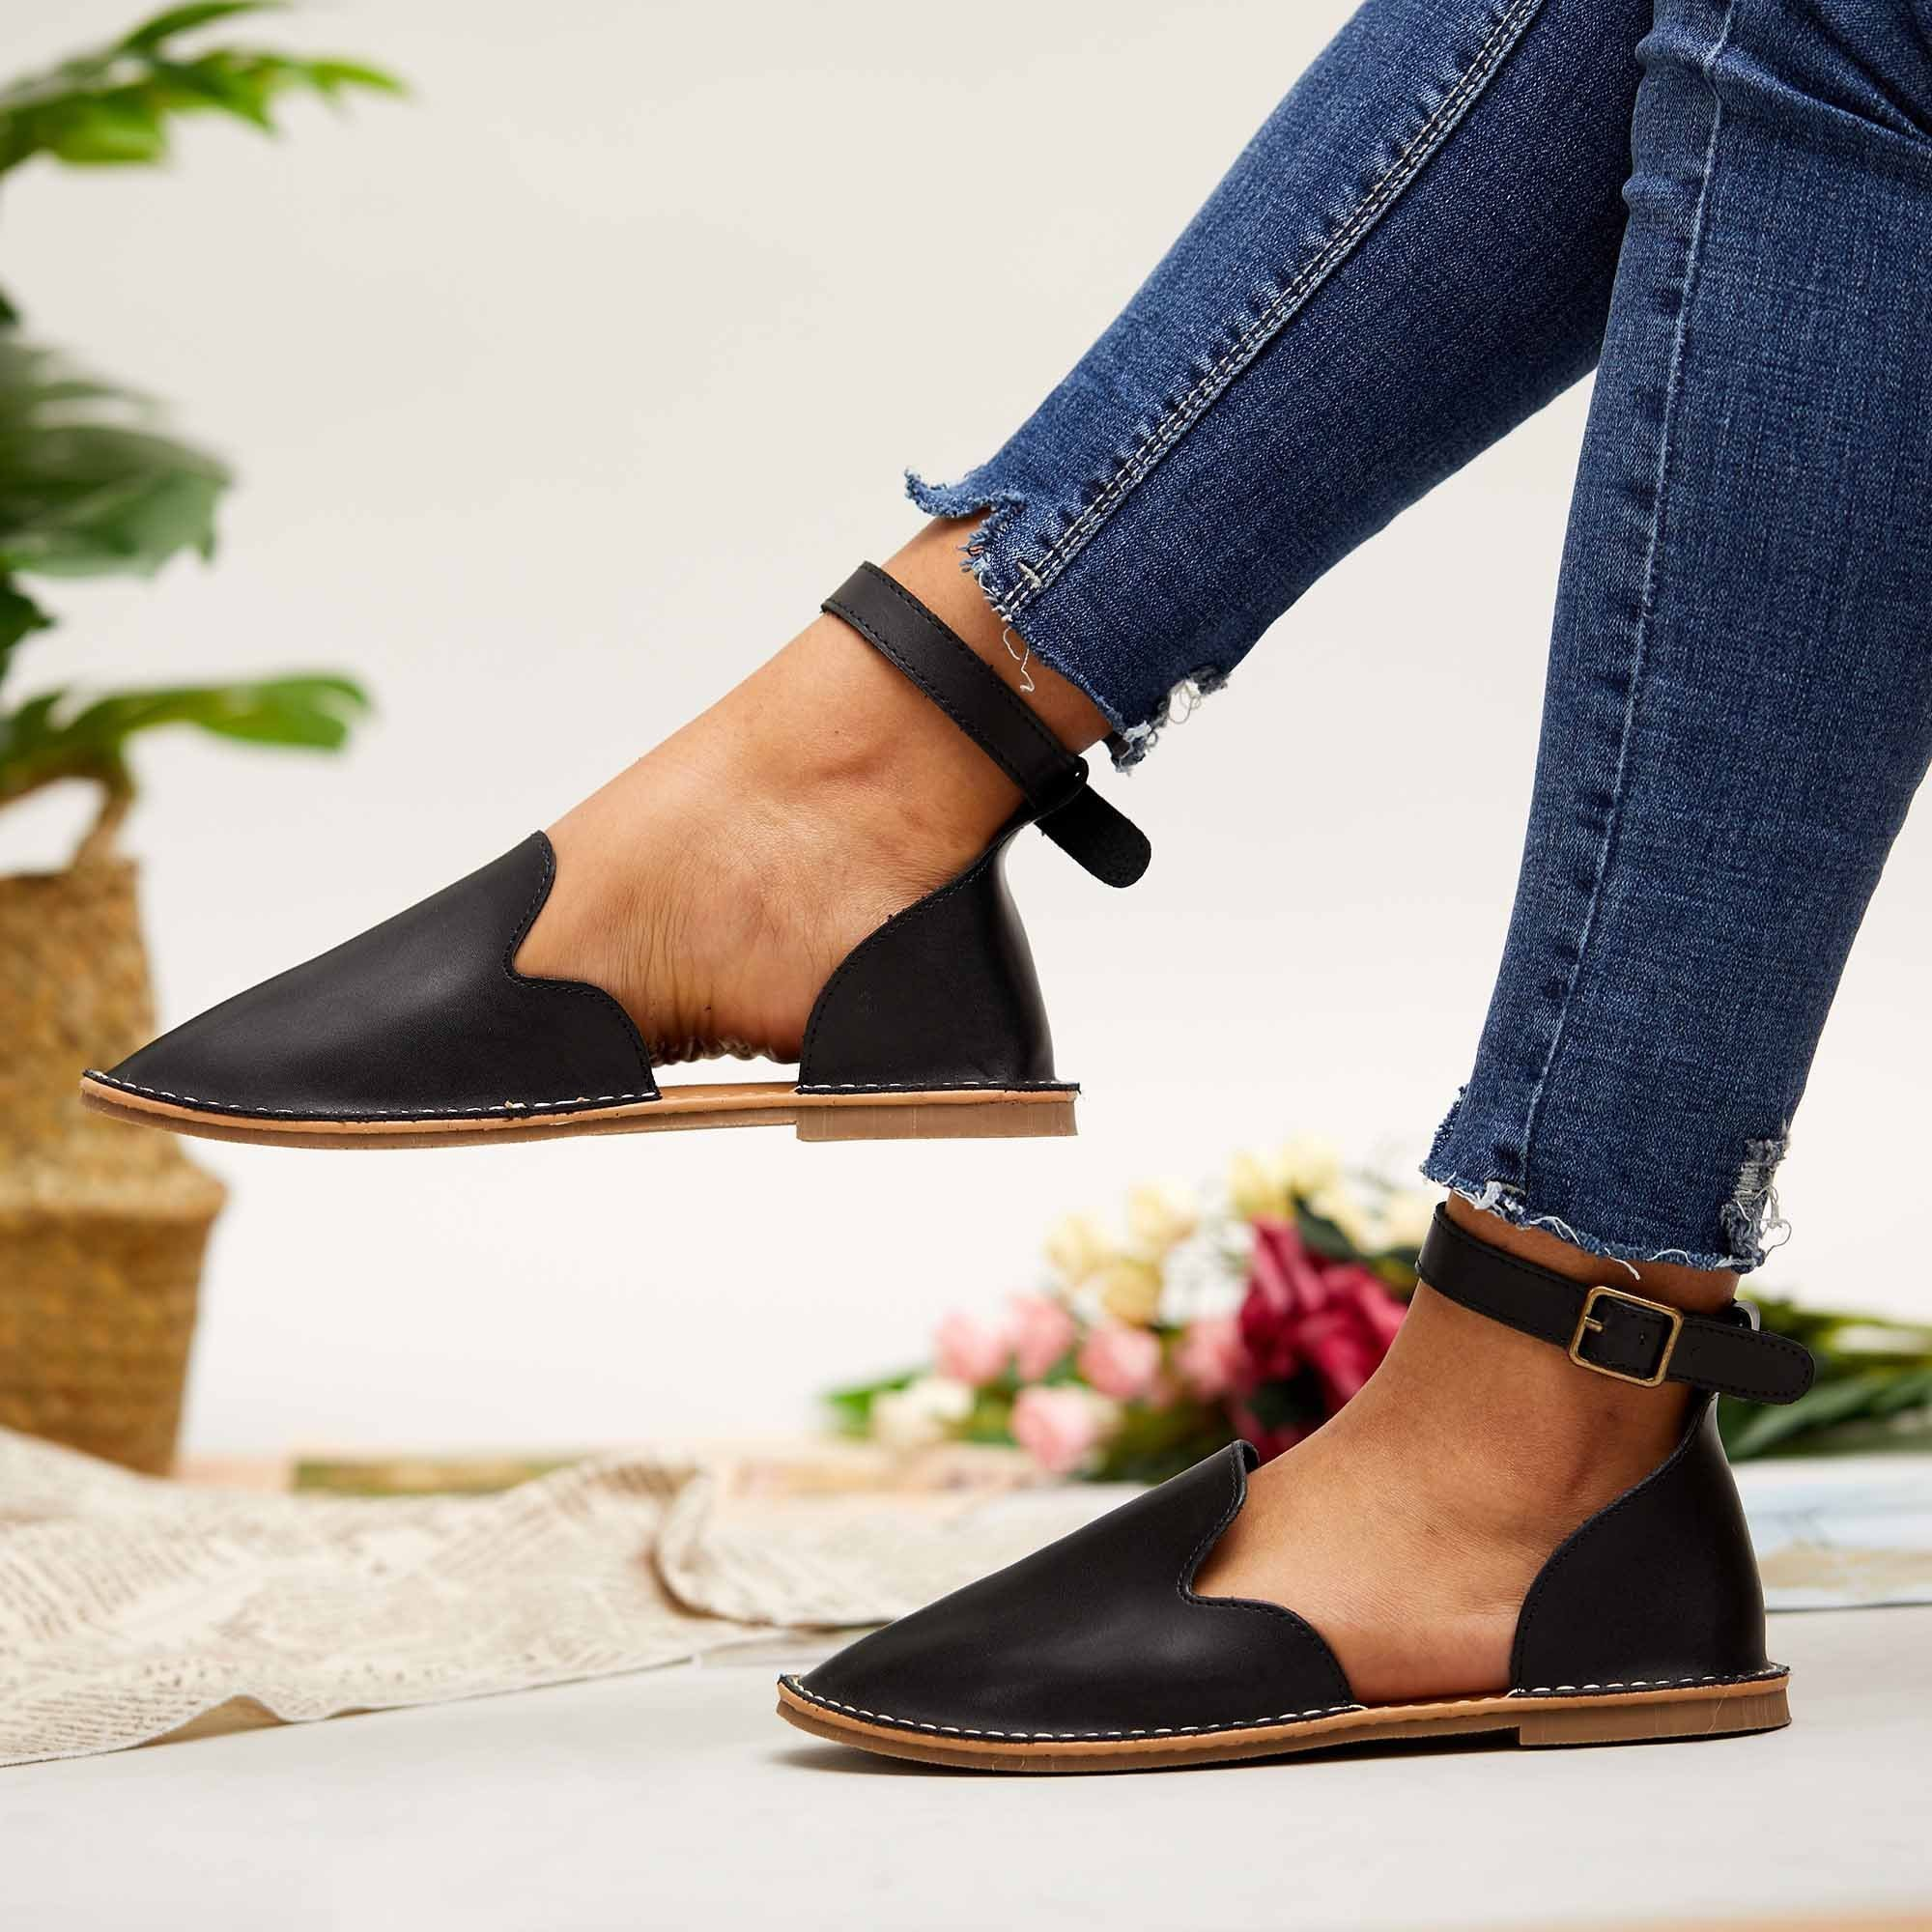 Zoeyootd Women Casual Slip On Ankle Buckle Flats